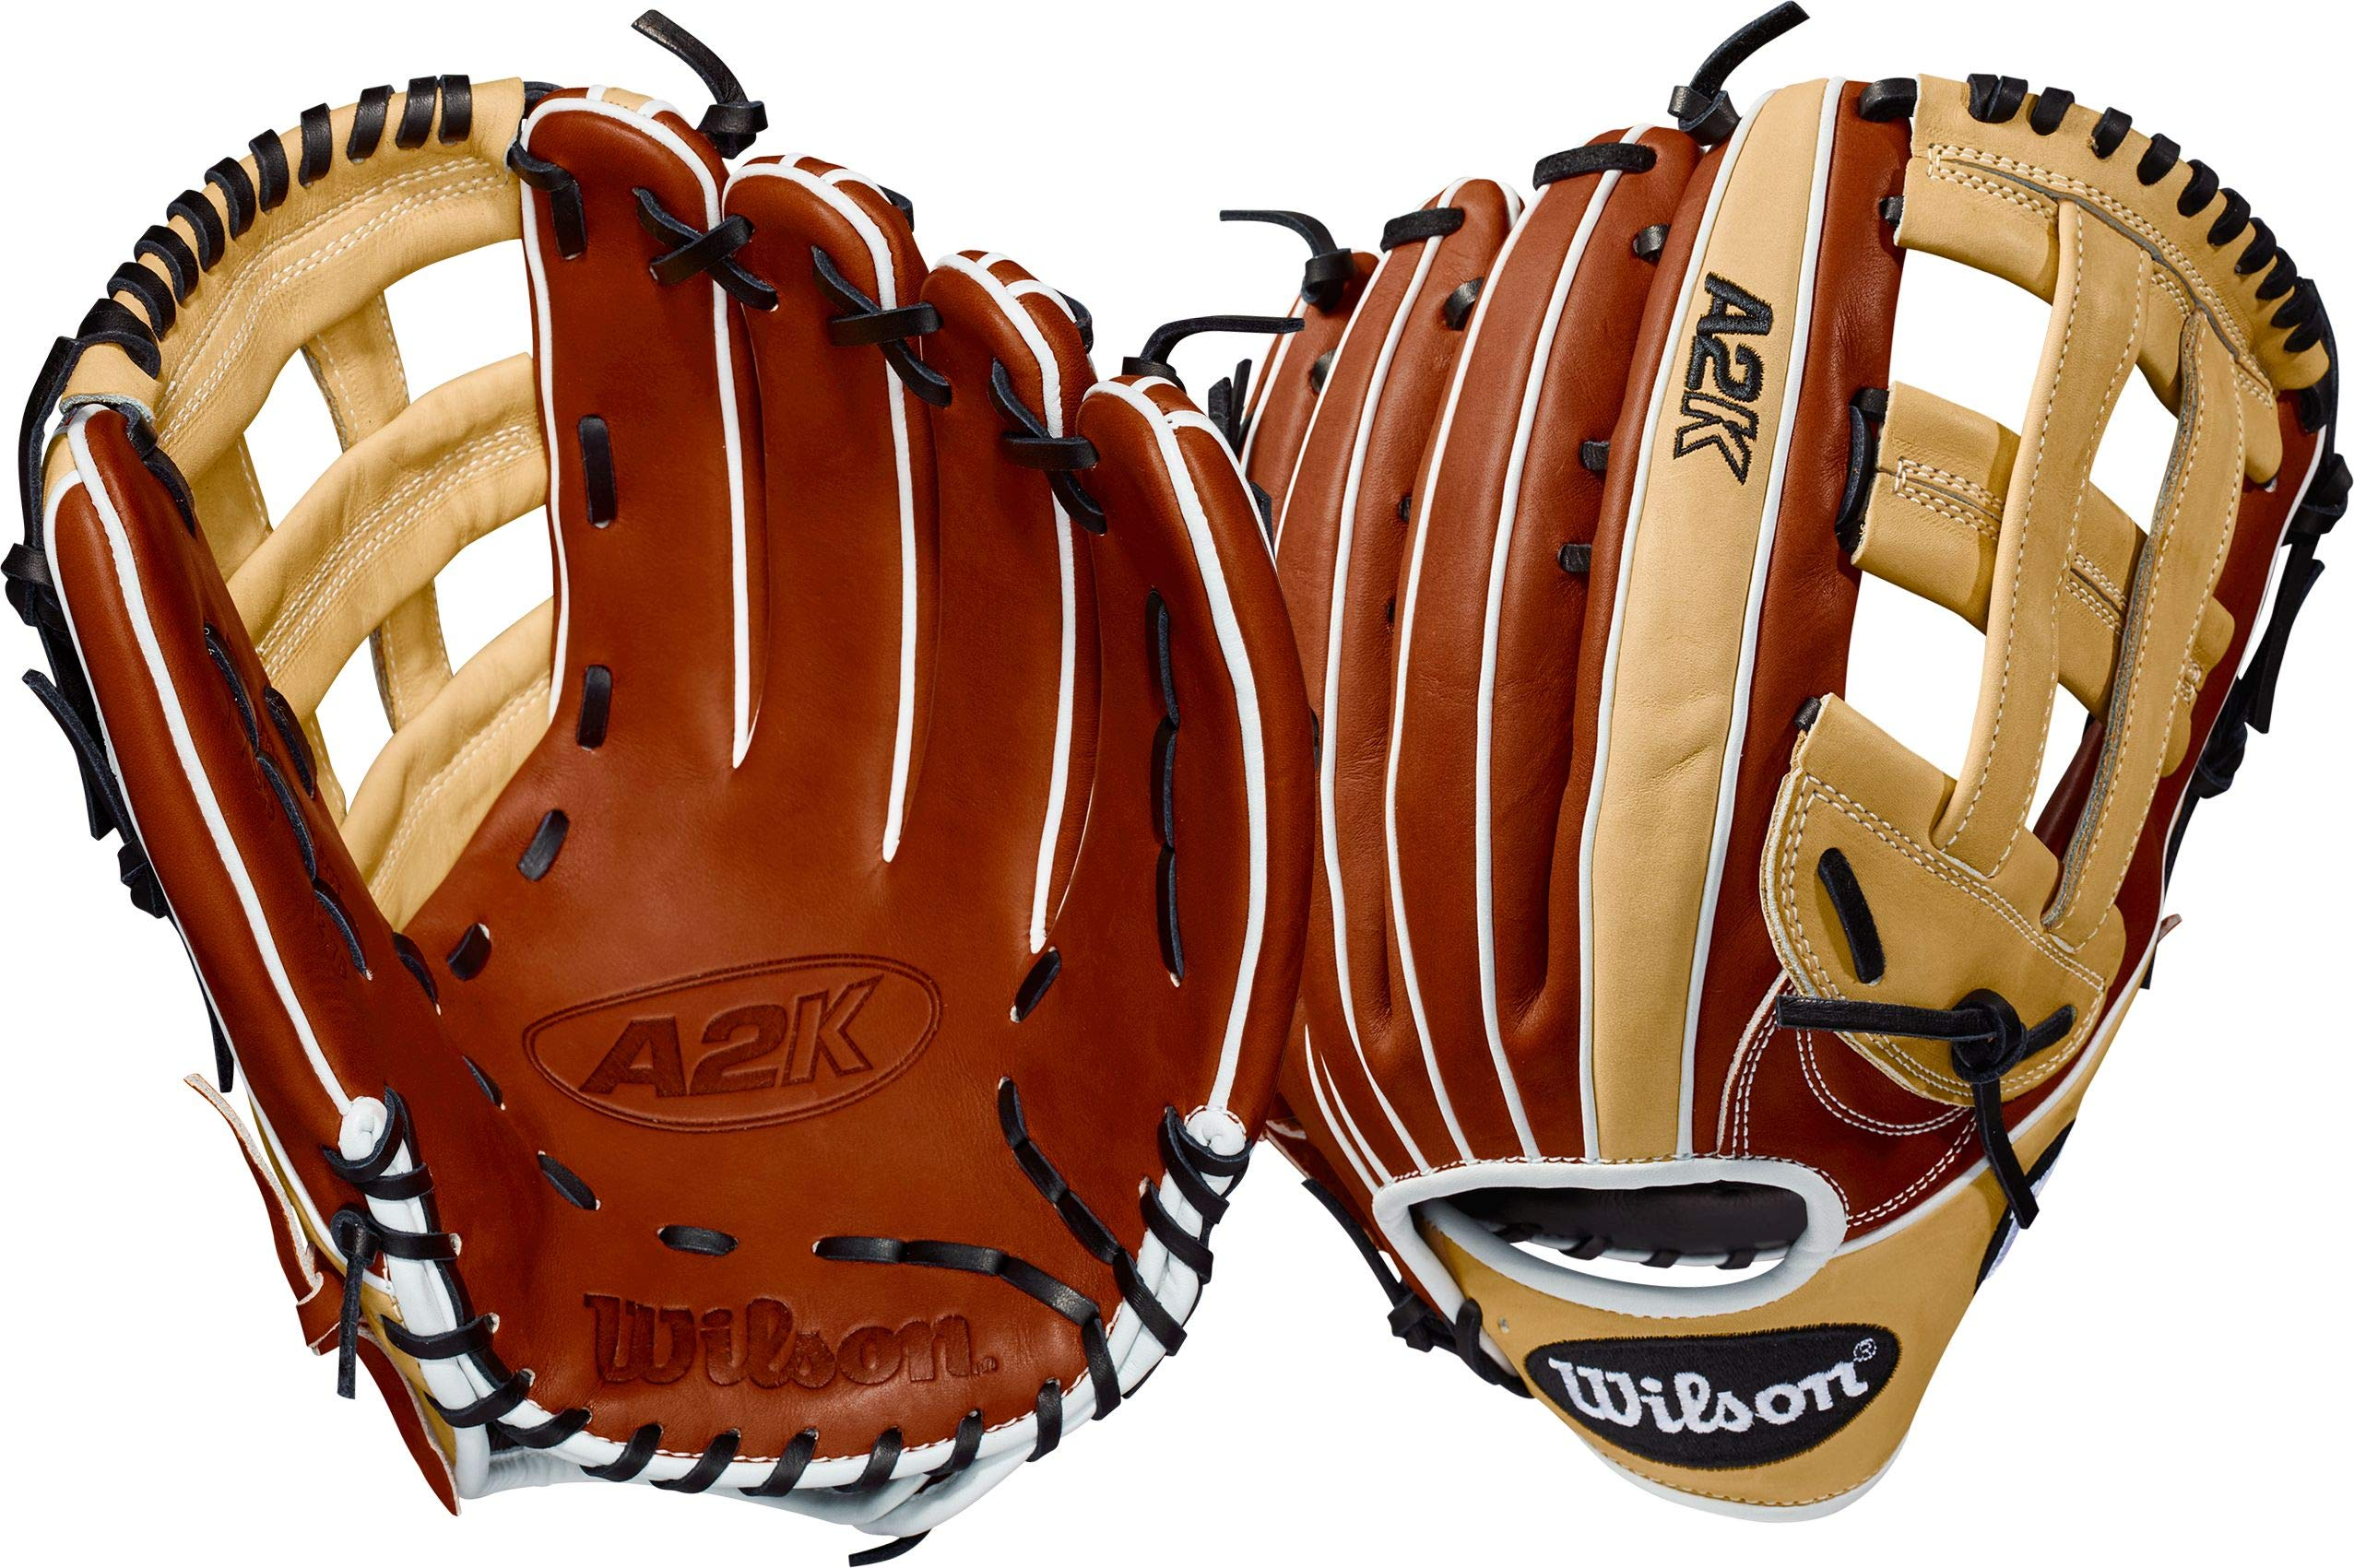 Wilson 2018 A2K 1799 12.75'' Outfield Baseball Glove, Left Hand Throw - Copper/Blonde/White by Wilson